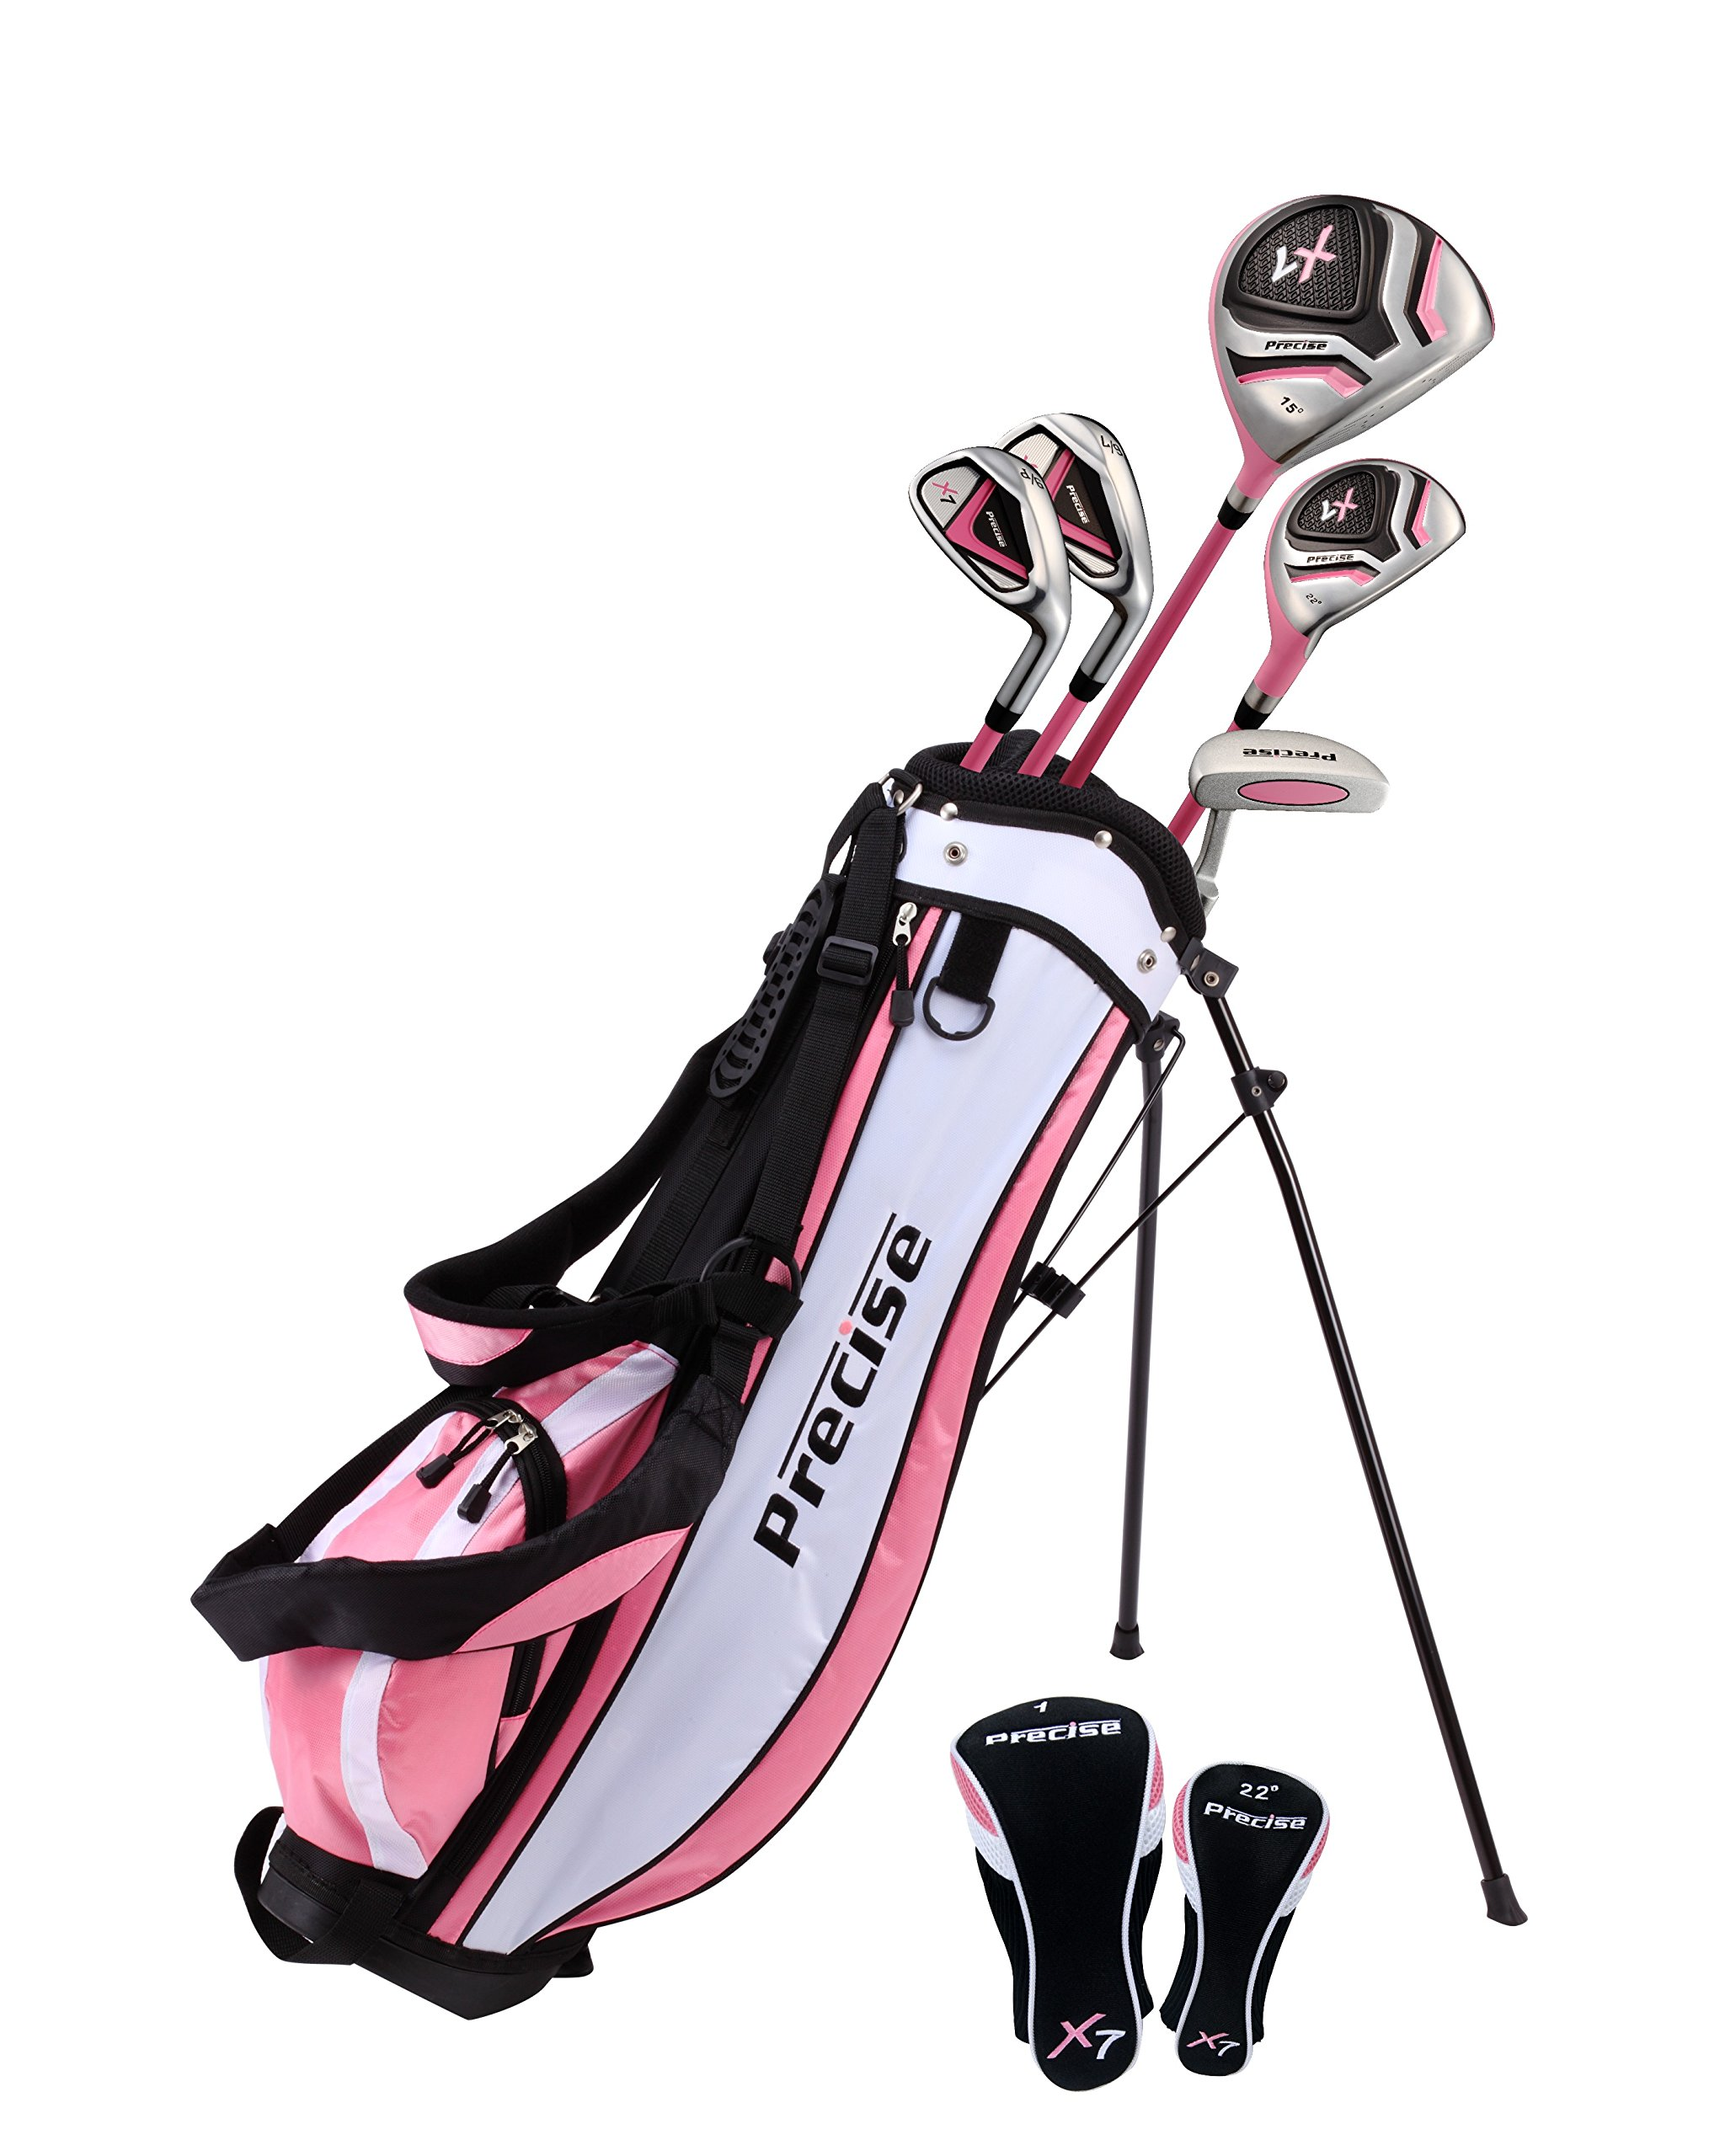 Distinctive Girls Pink Junior Golf Club Set for Age 9 to 12  ( Height 4'4'' to 5' ), Left Handed Only,  Set Includes: Driver, Hybrid Wood, 2 Irons, Putter, Bonus Stand Bag & 2 Headcovers by Precise